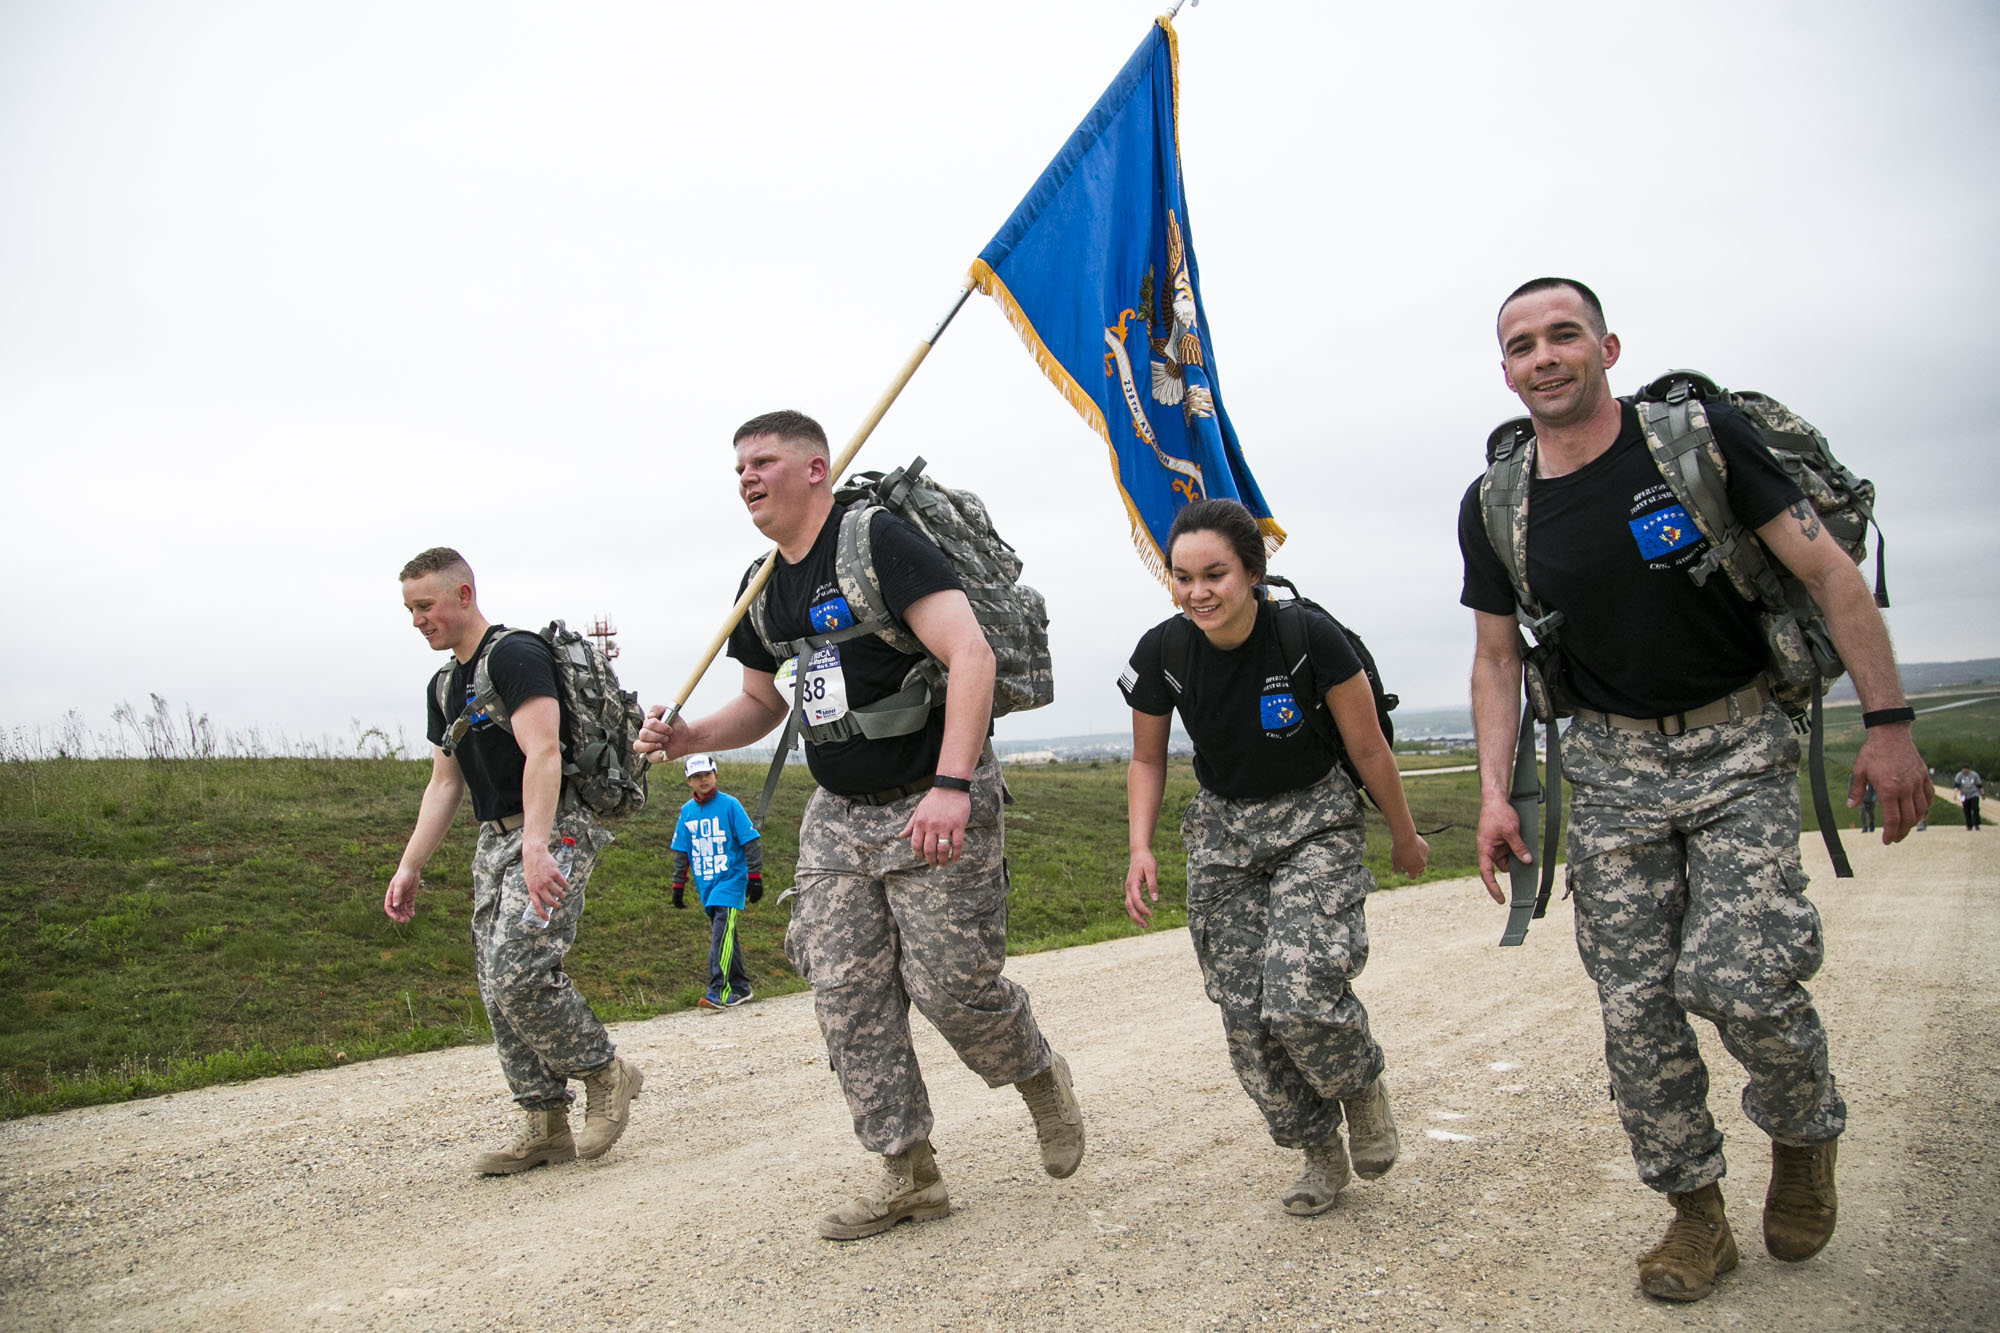 Filmmed and photographed a half marathon at Camp Bondsteel in Kosovo for American300.